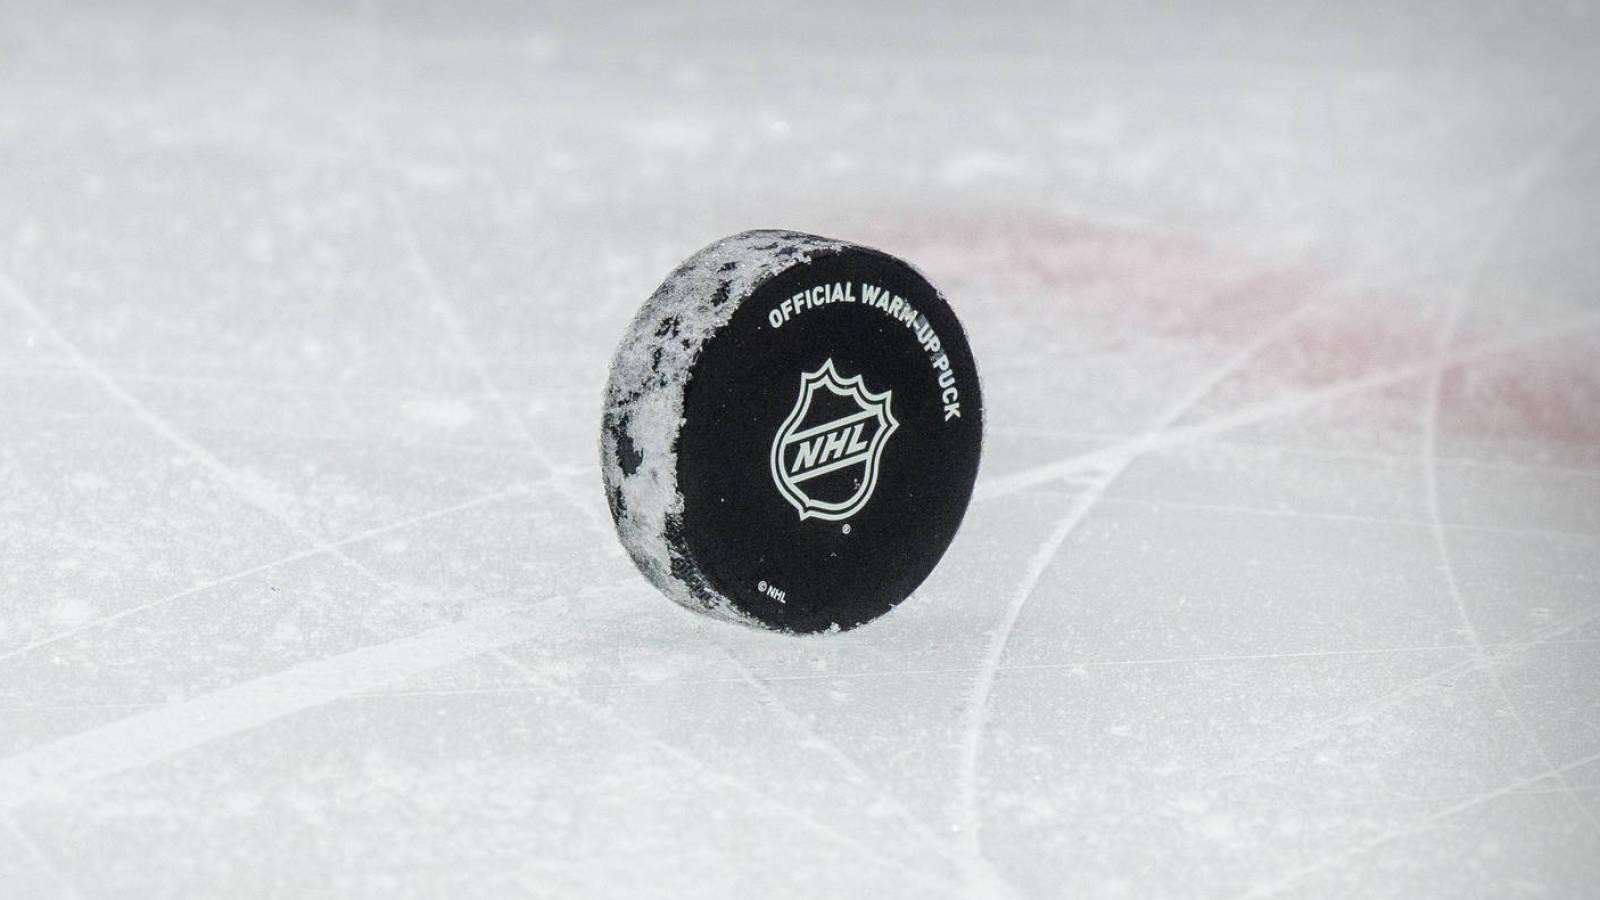 Salary cap increases are expected to be minimal through 2025-26